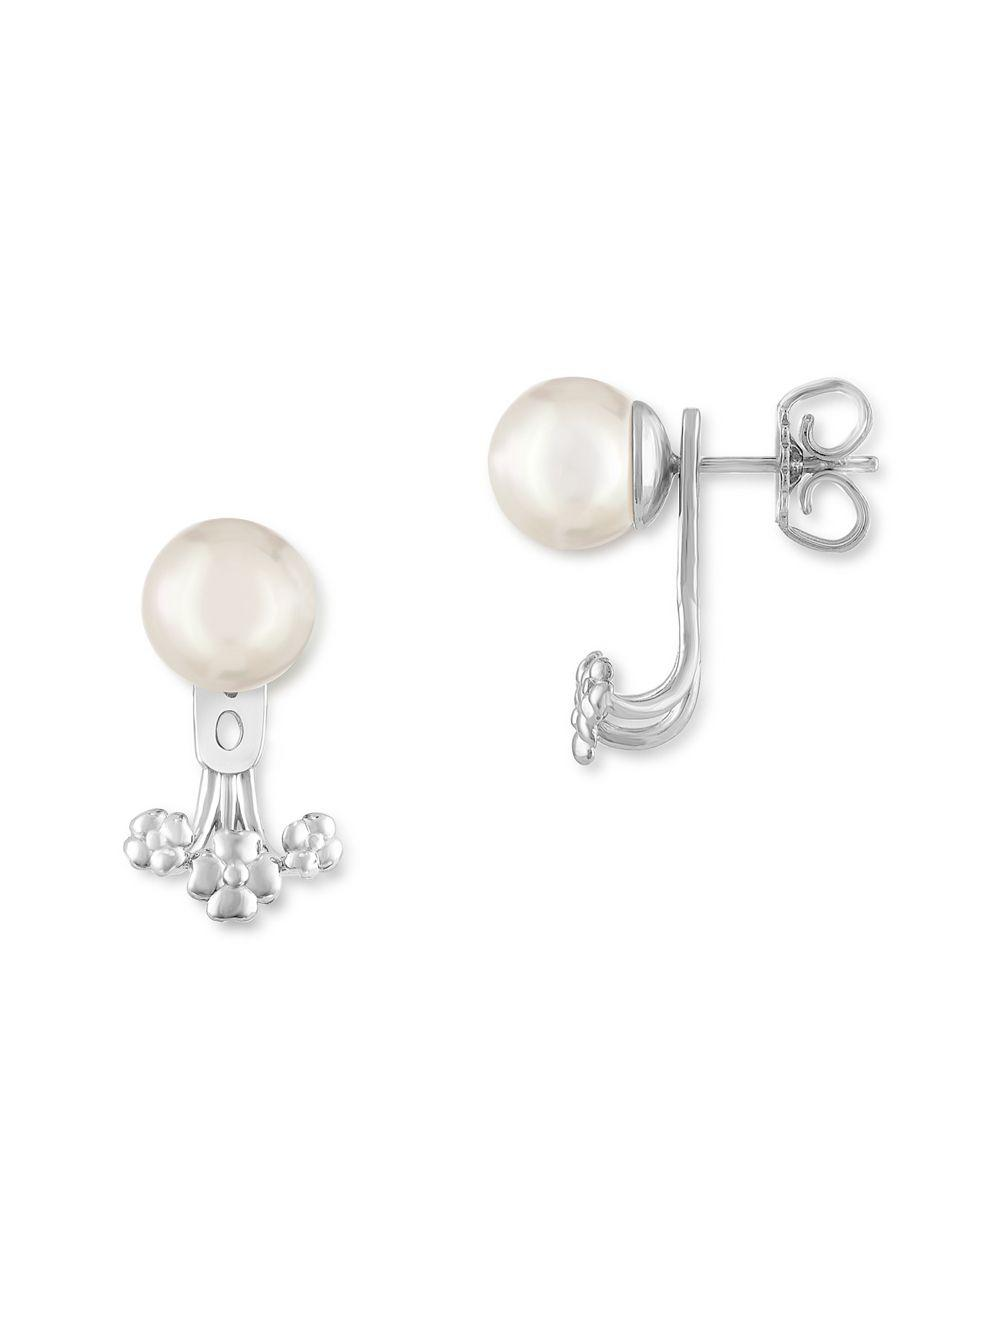 silver products stud earrings collections classic pearl sterling wholesale